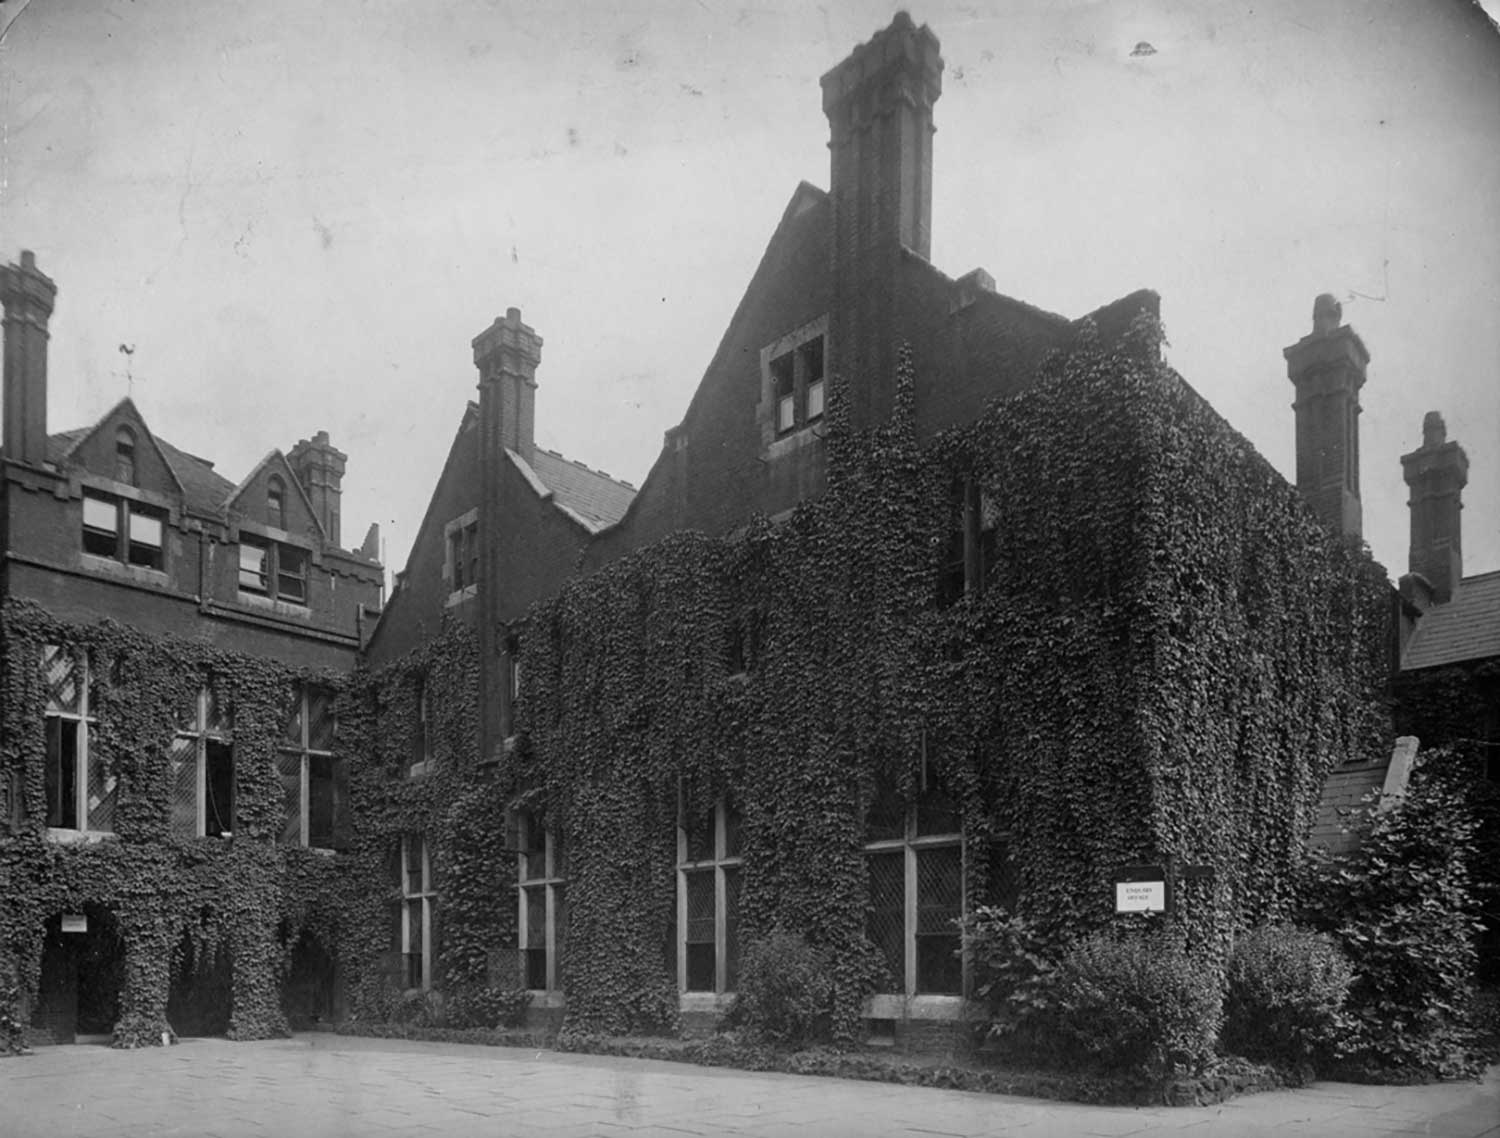 Archive image of the exterior of Toynbee Hall, in Aldgate, East London